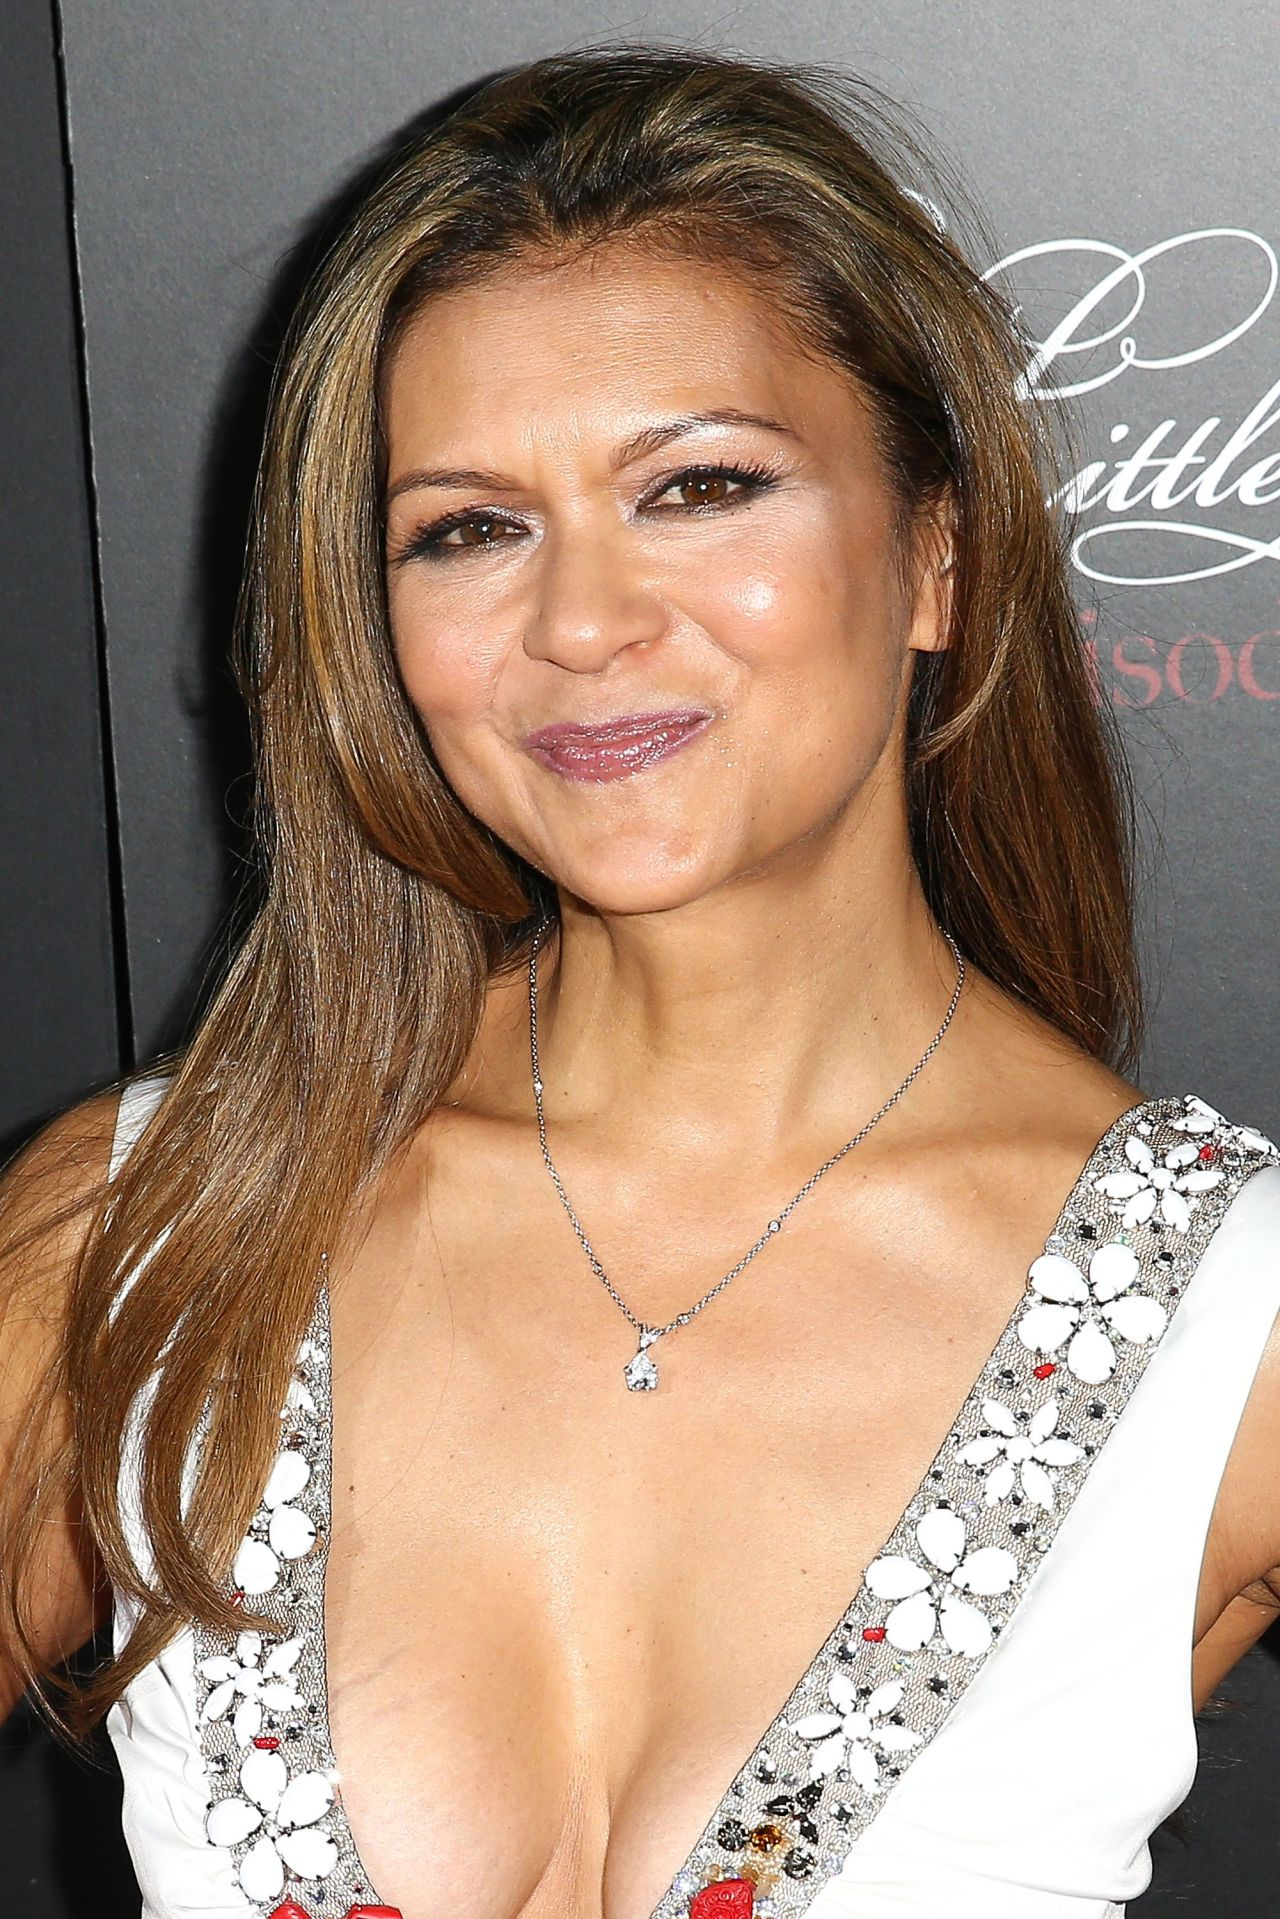 The 56-year old daughter of father Robert Peeples and mother Elizabeth Peeples, 156 cm tall Nia Peeples in 2018 photo